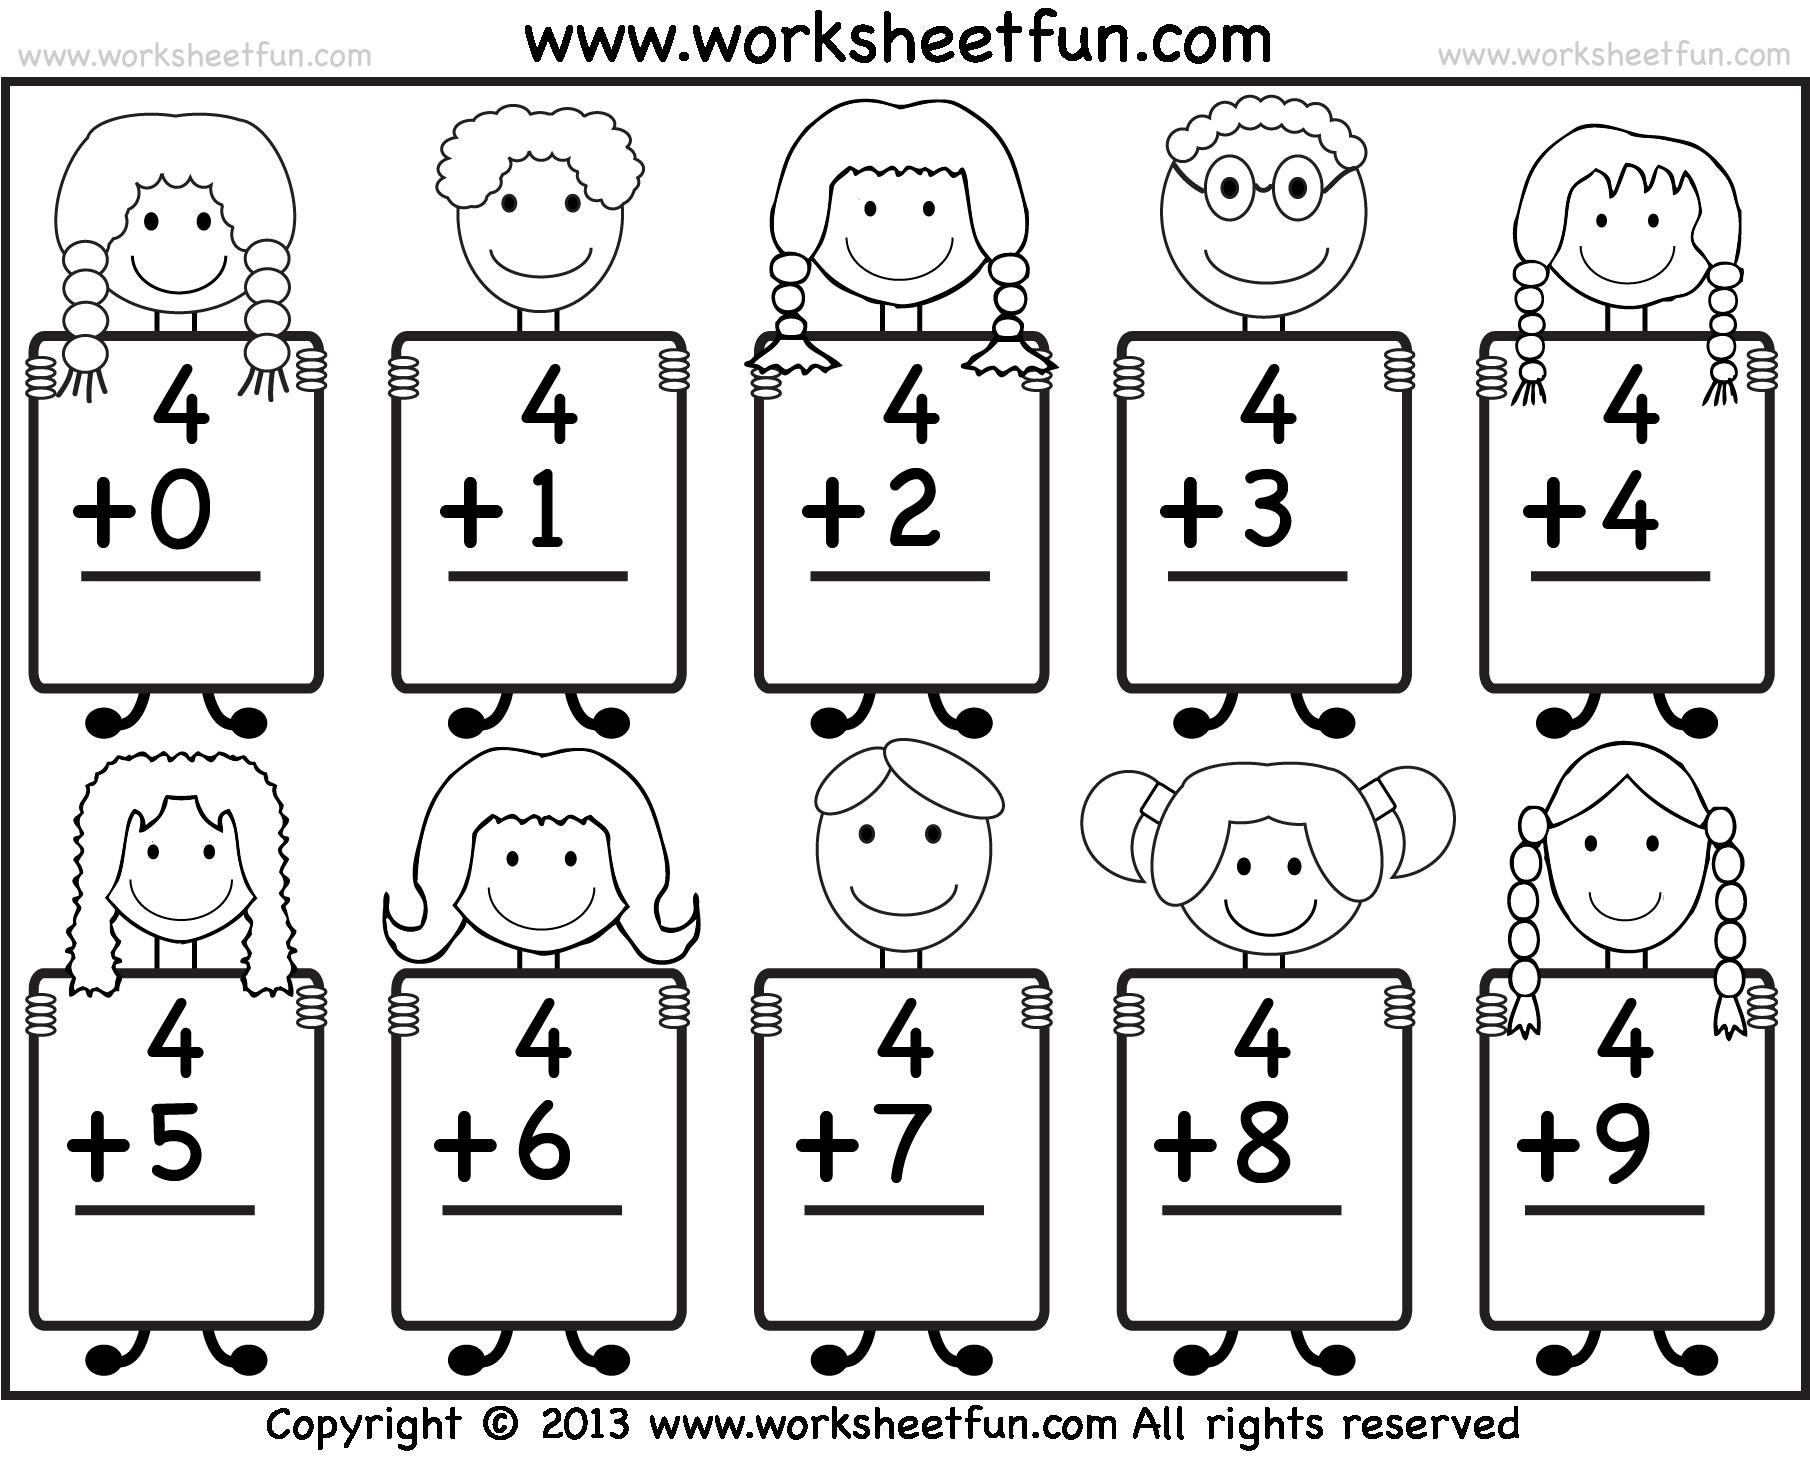 freeprintablemathworksheetsforkindergartenaddition1png – Kindergarten Free Worksheets